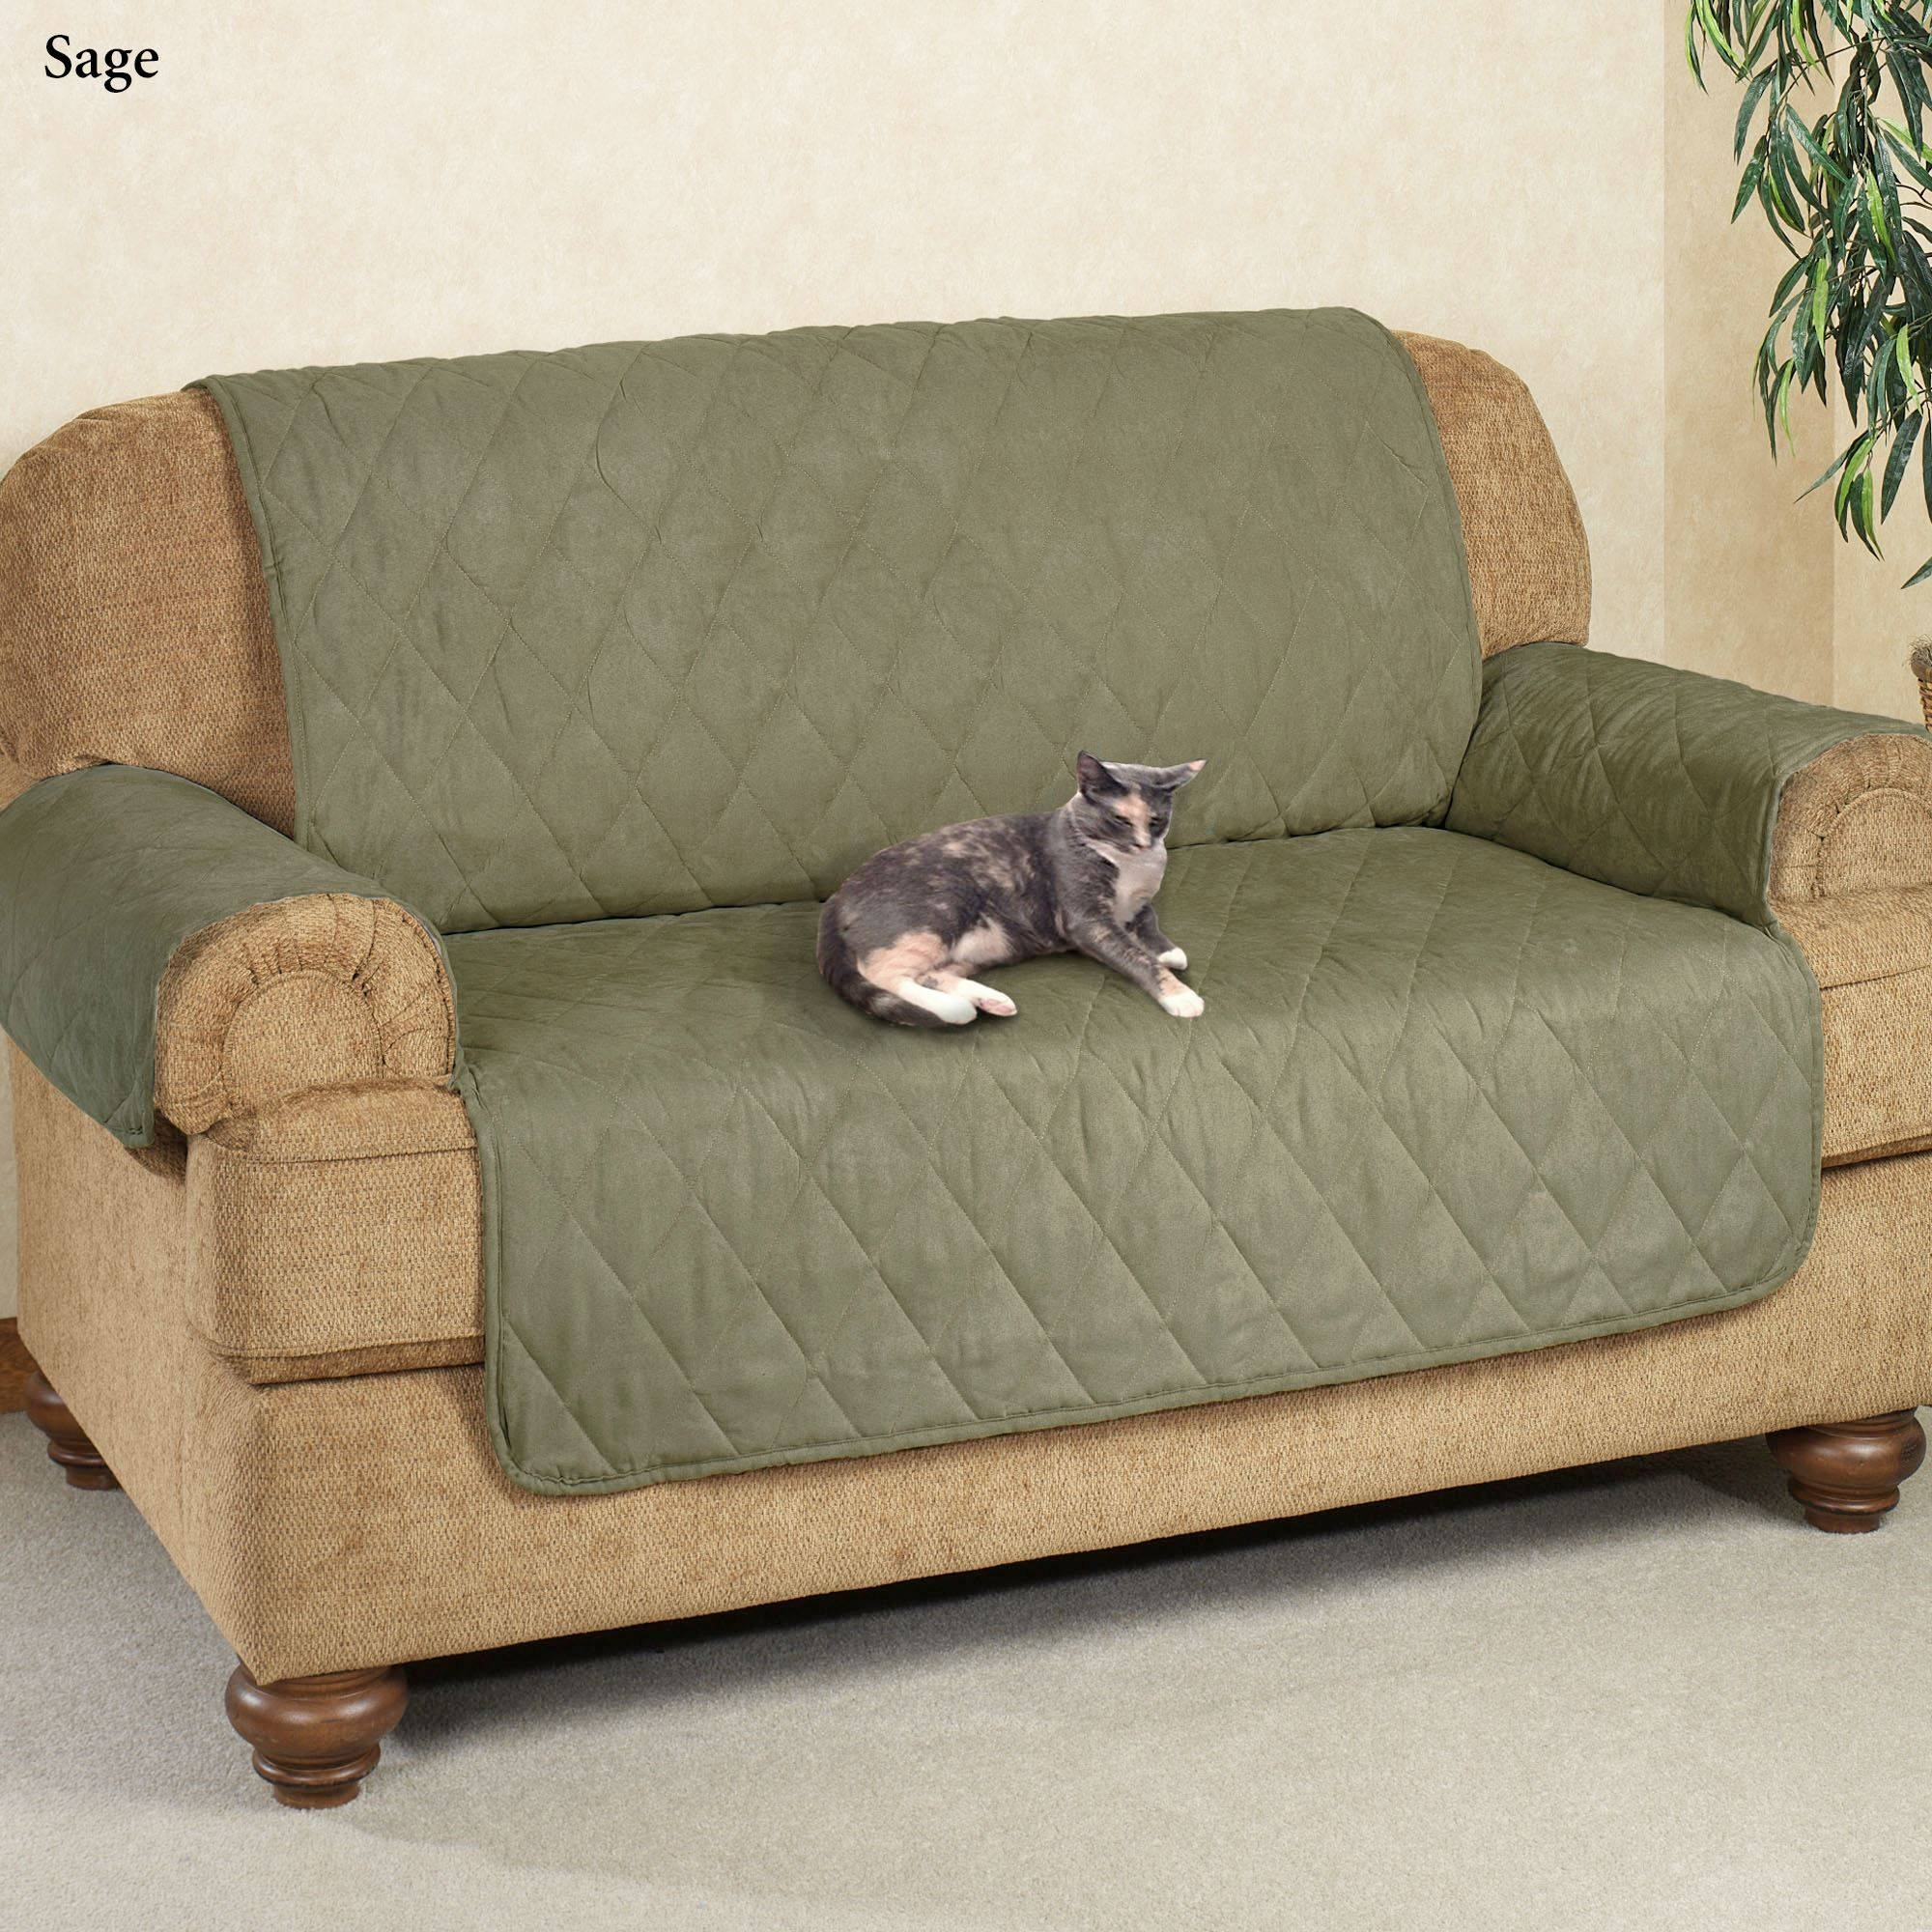 Cat Proof Sofa 42 With Cat Proof Sofa – Bible Saitama Inside Cat Proof Sofas (View 5 of 15)